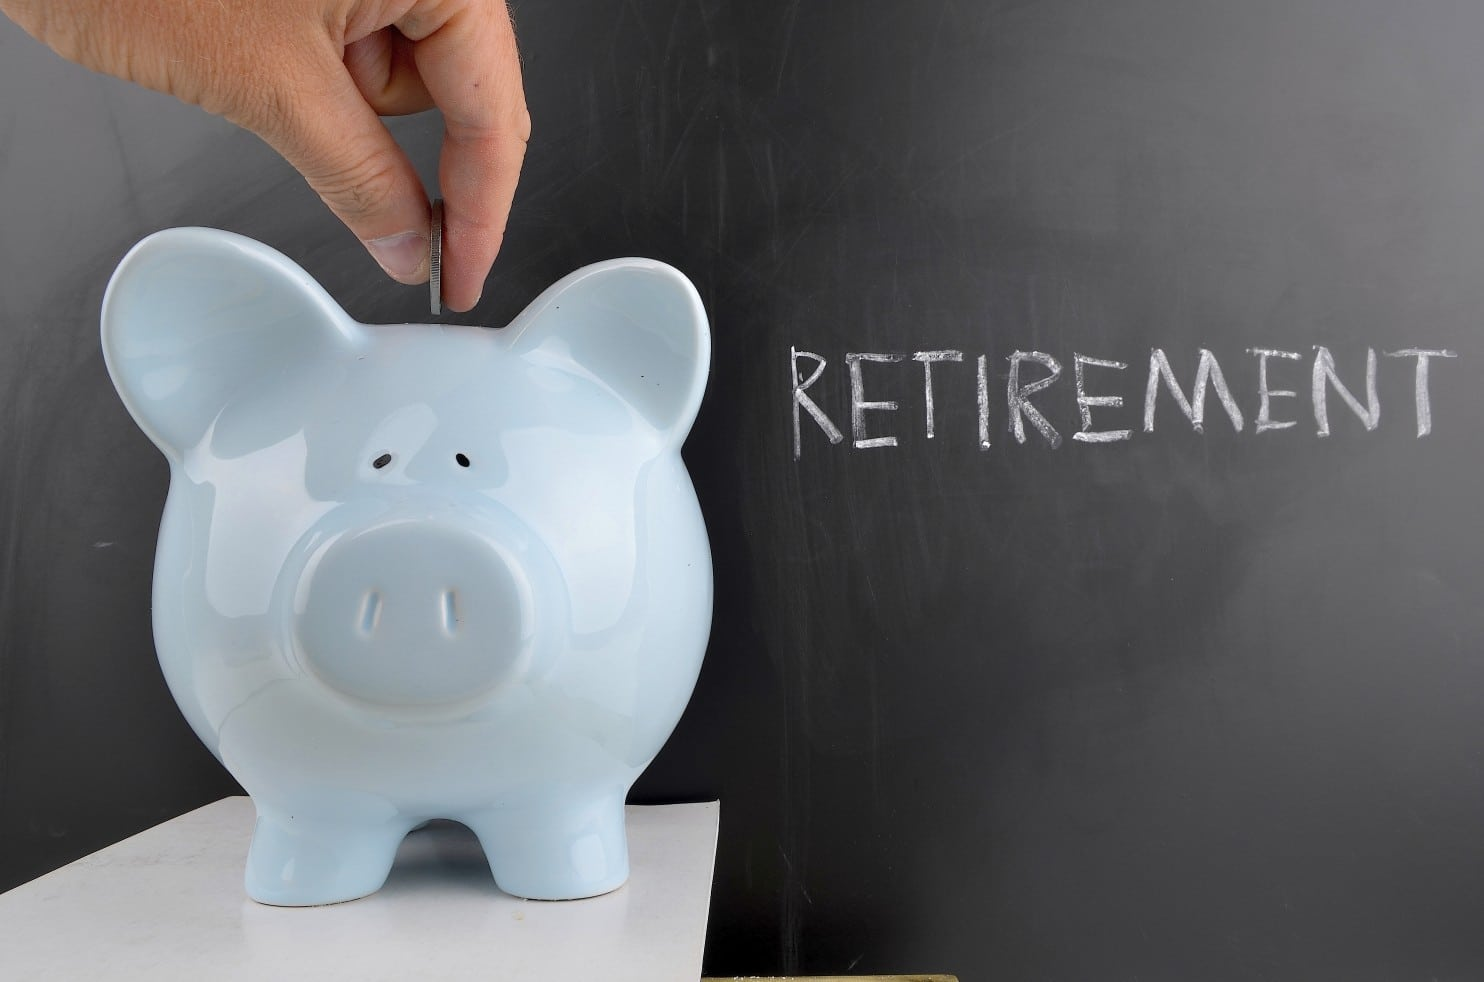 On women's paths to retirement security, there are plenty of hurdles